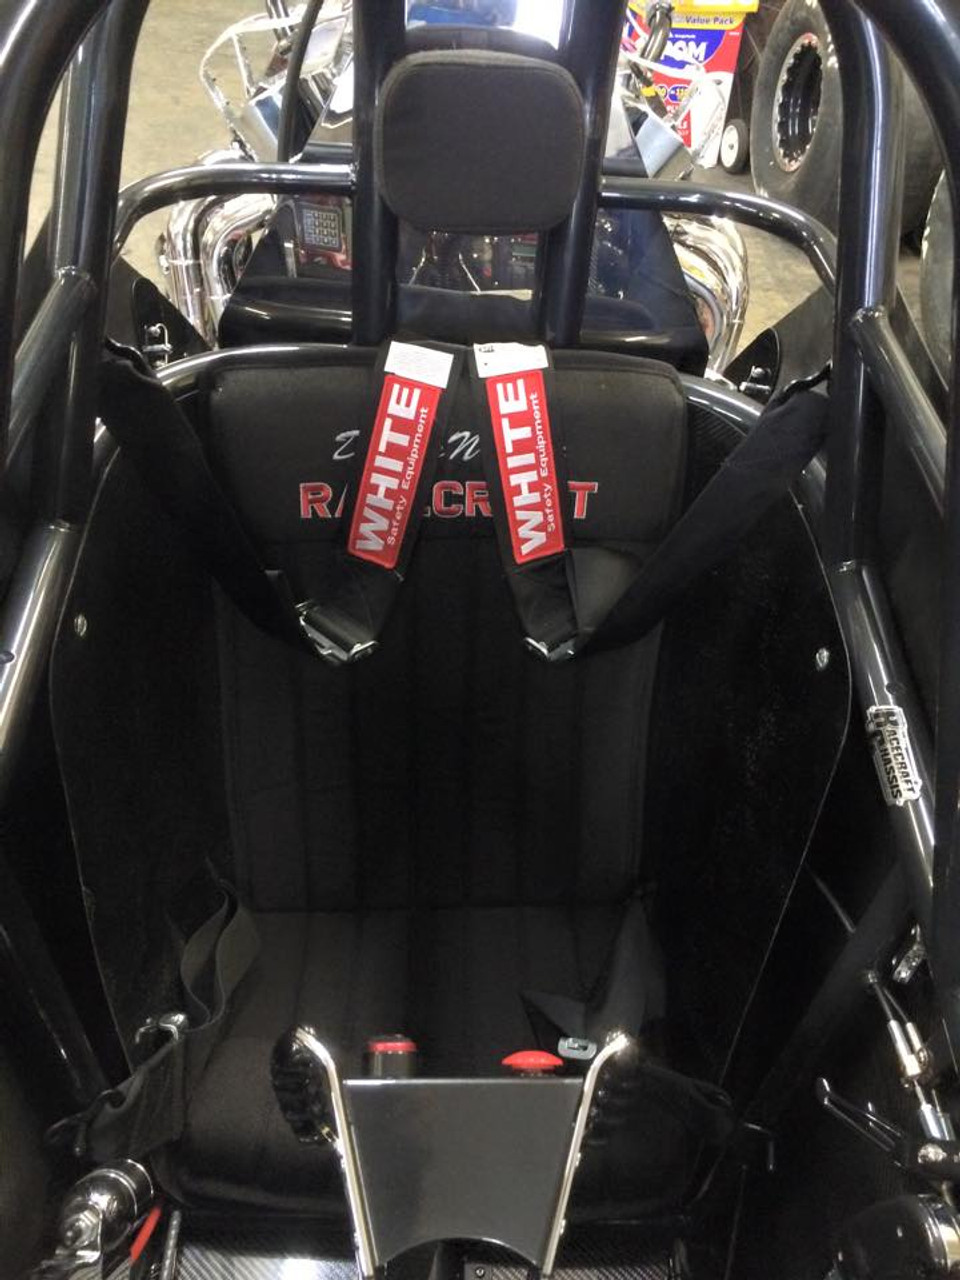 Danny Nelson Racecraft Chassis dragster seat